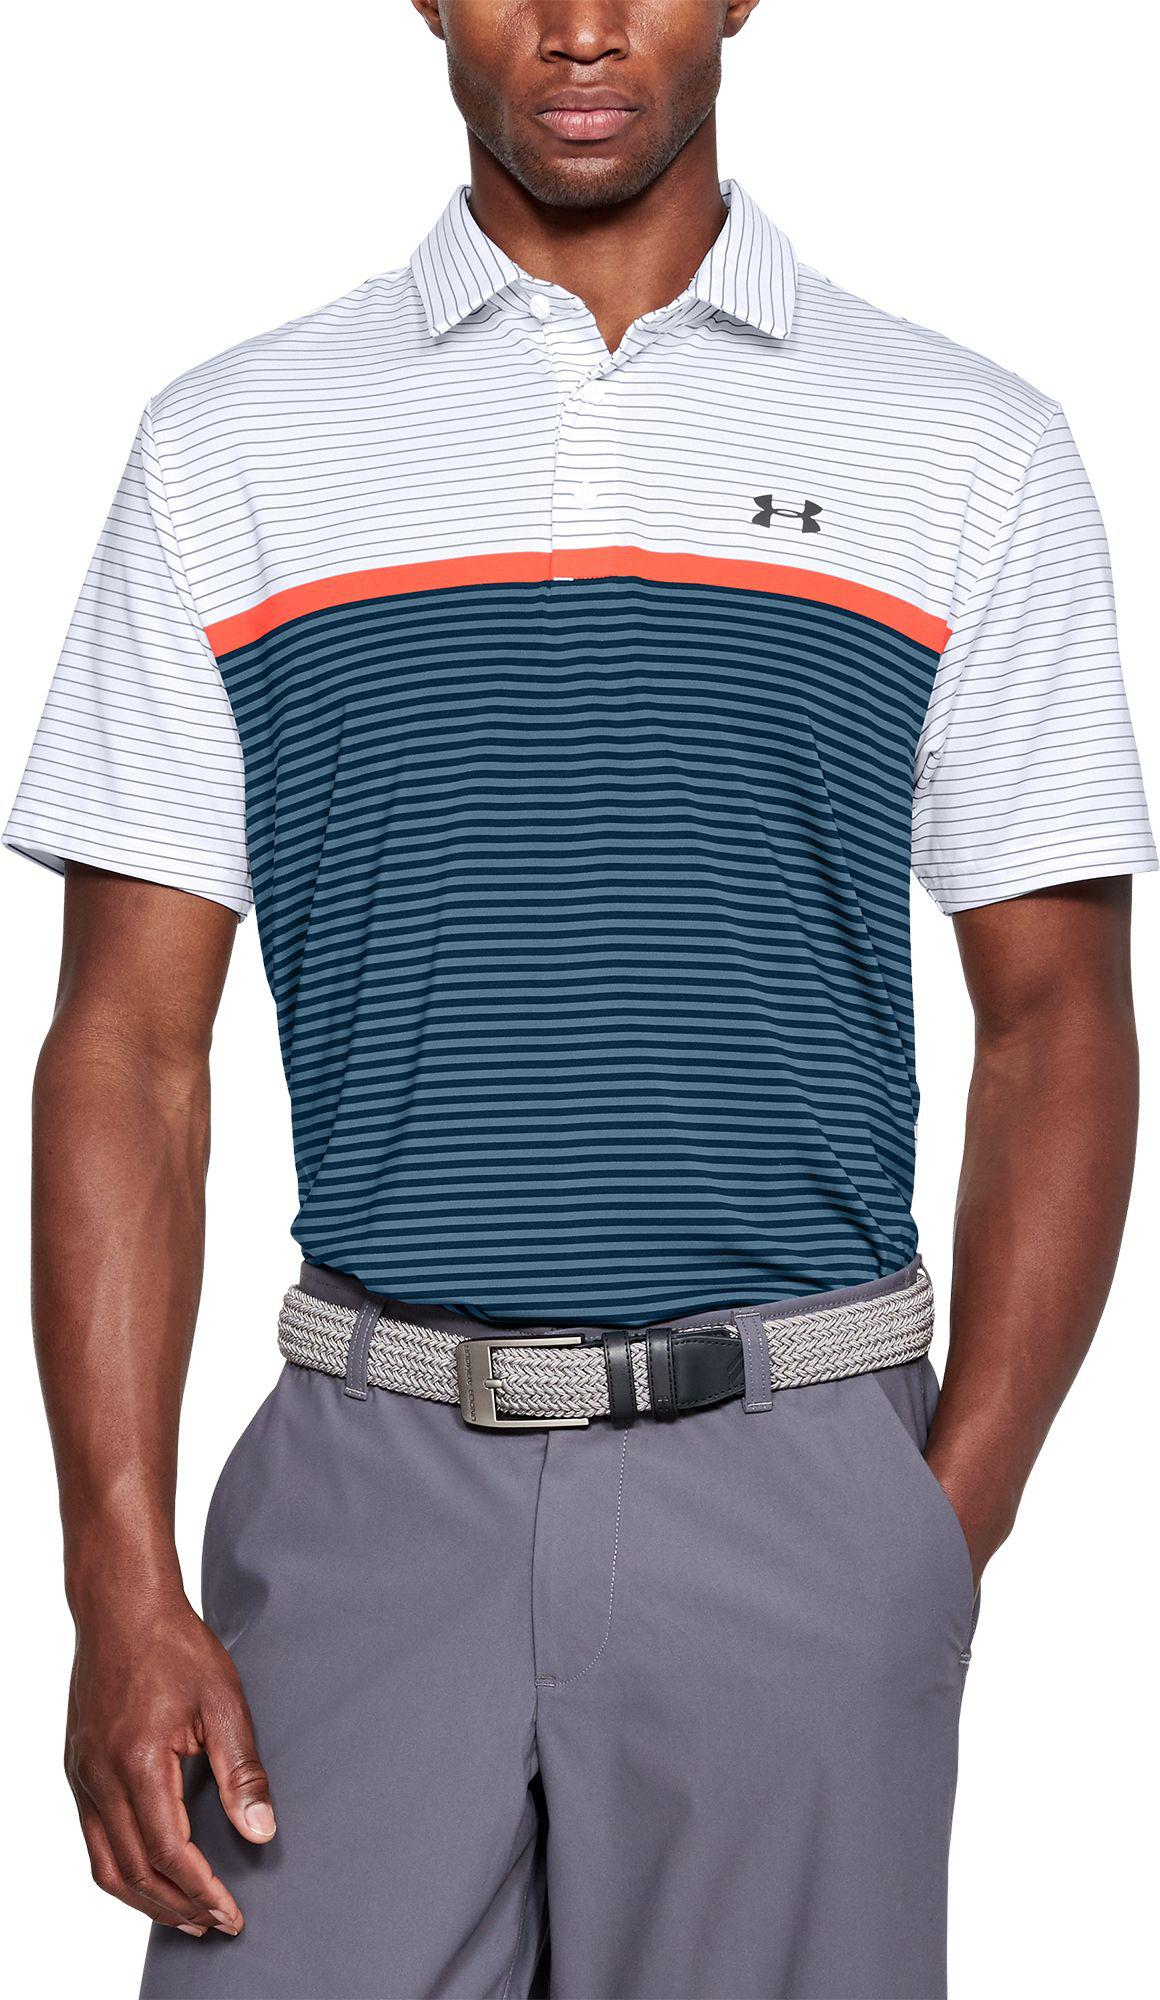 808b465596 Under Armour Playoff Super Stripe Golf Polo in White for Men - Lyst